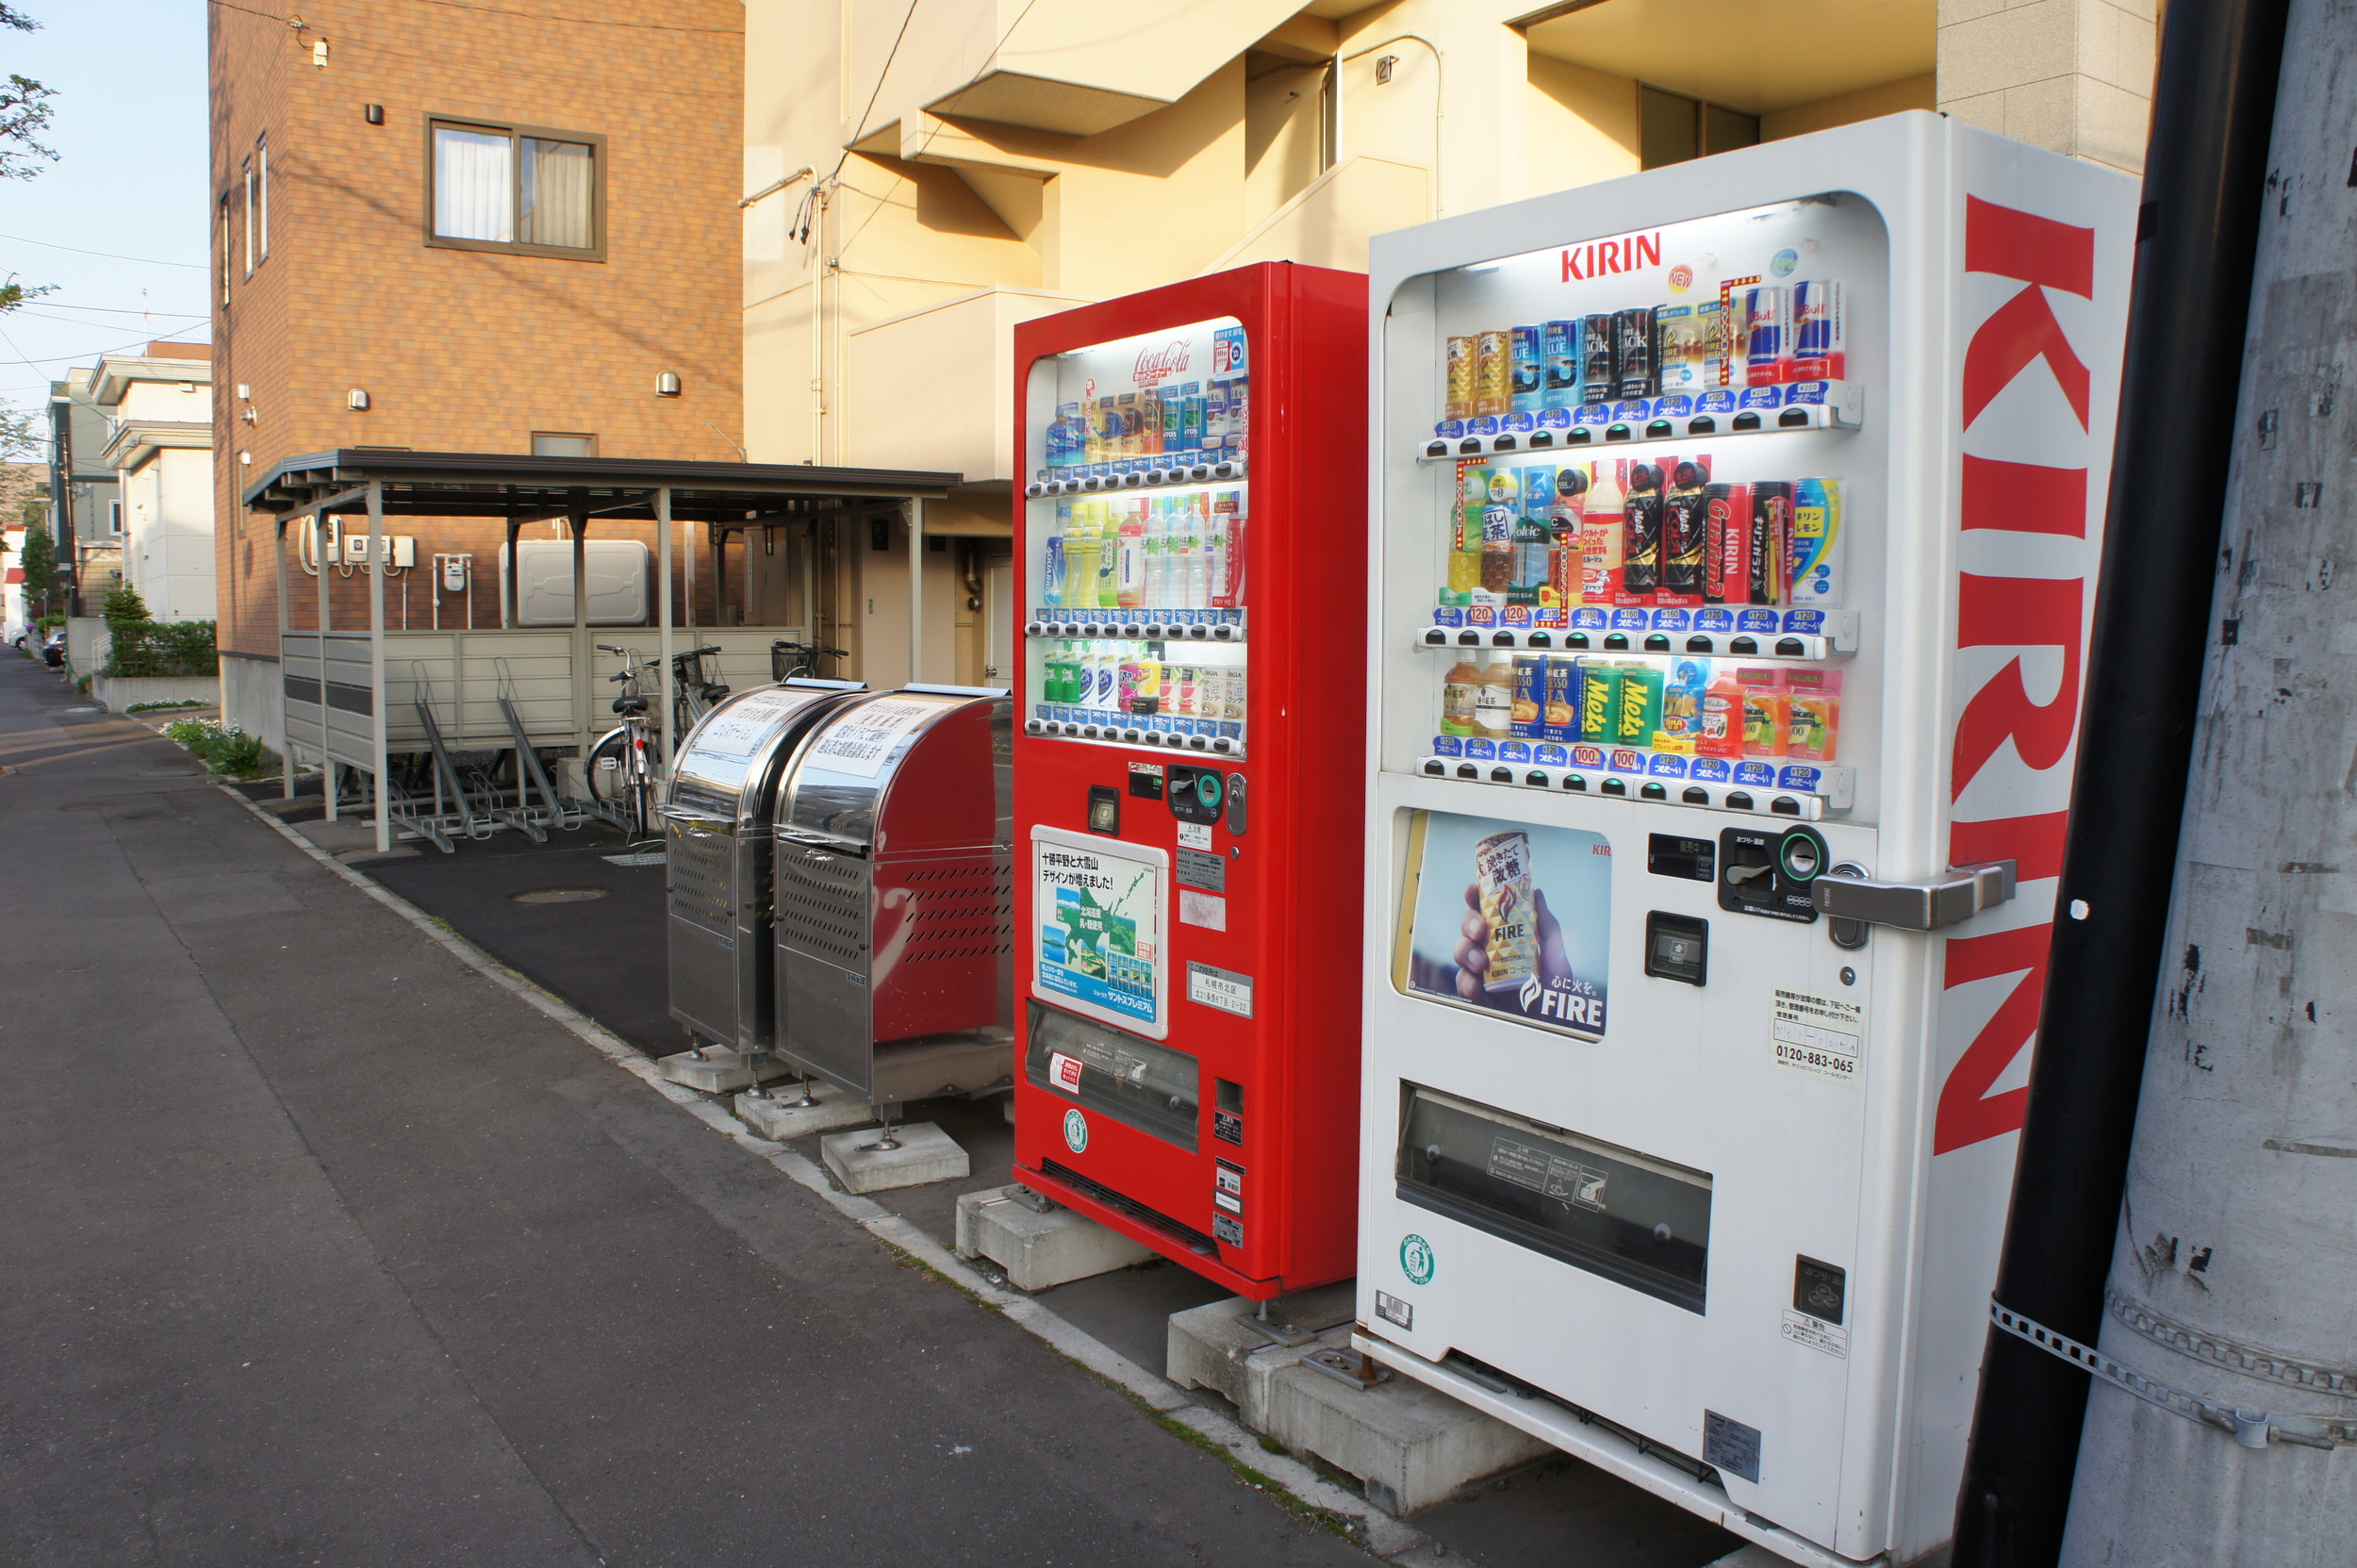 Drinks machines are everywhere. Everywhere.